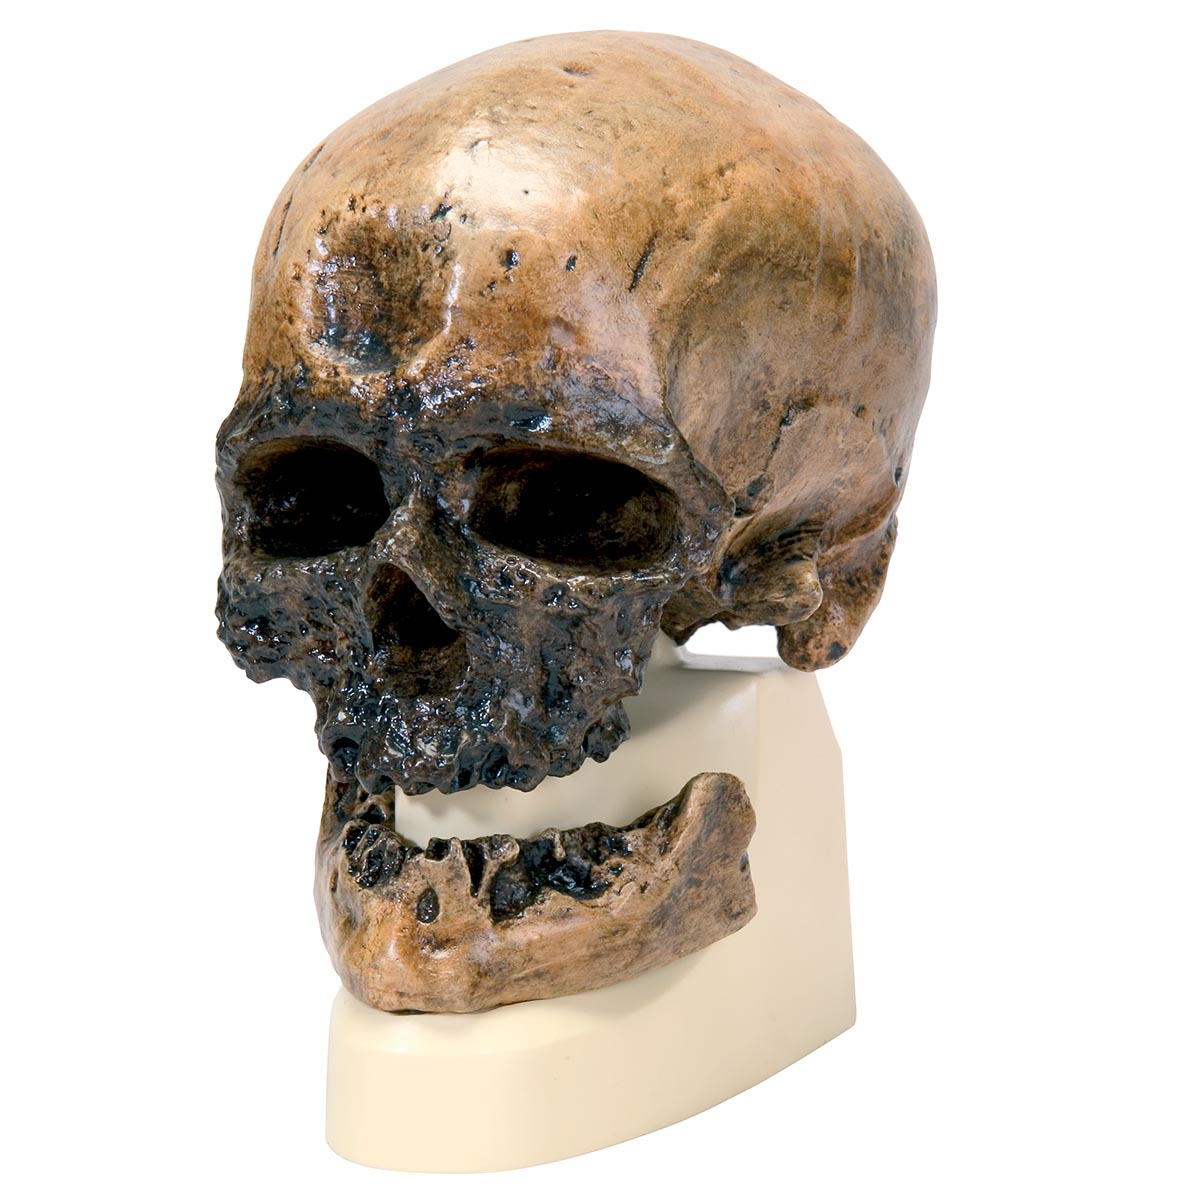 Comparative Anatomy Models - Plastic Skull Model - Anthropology ...